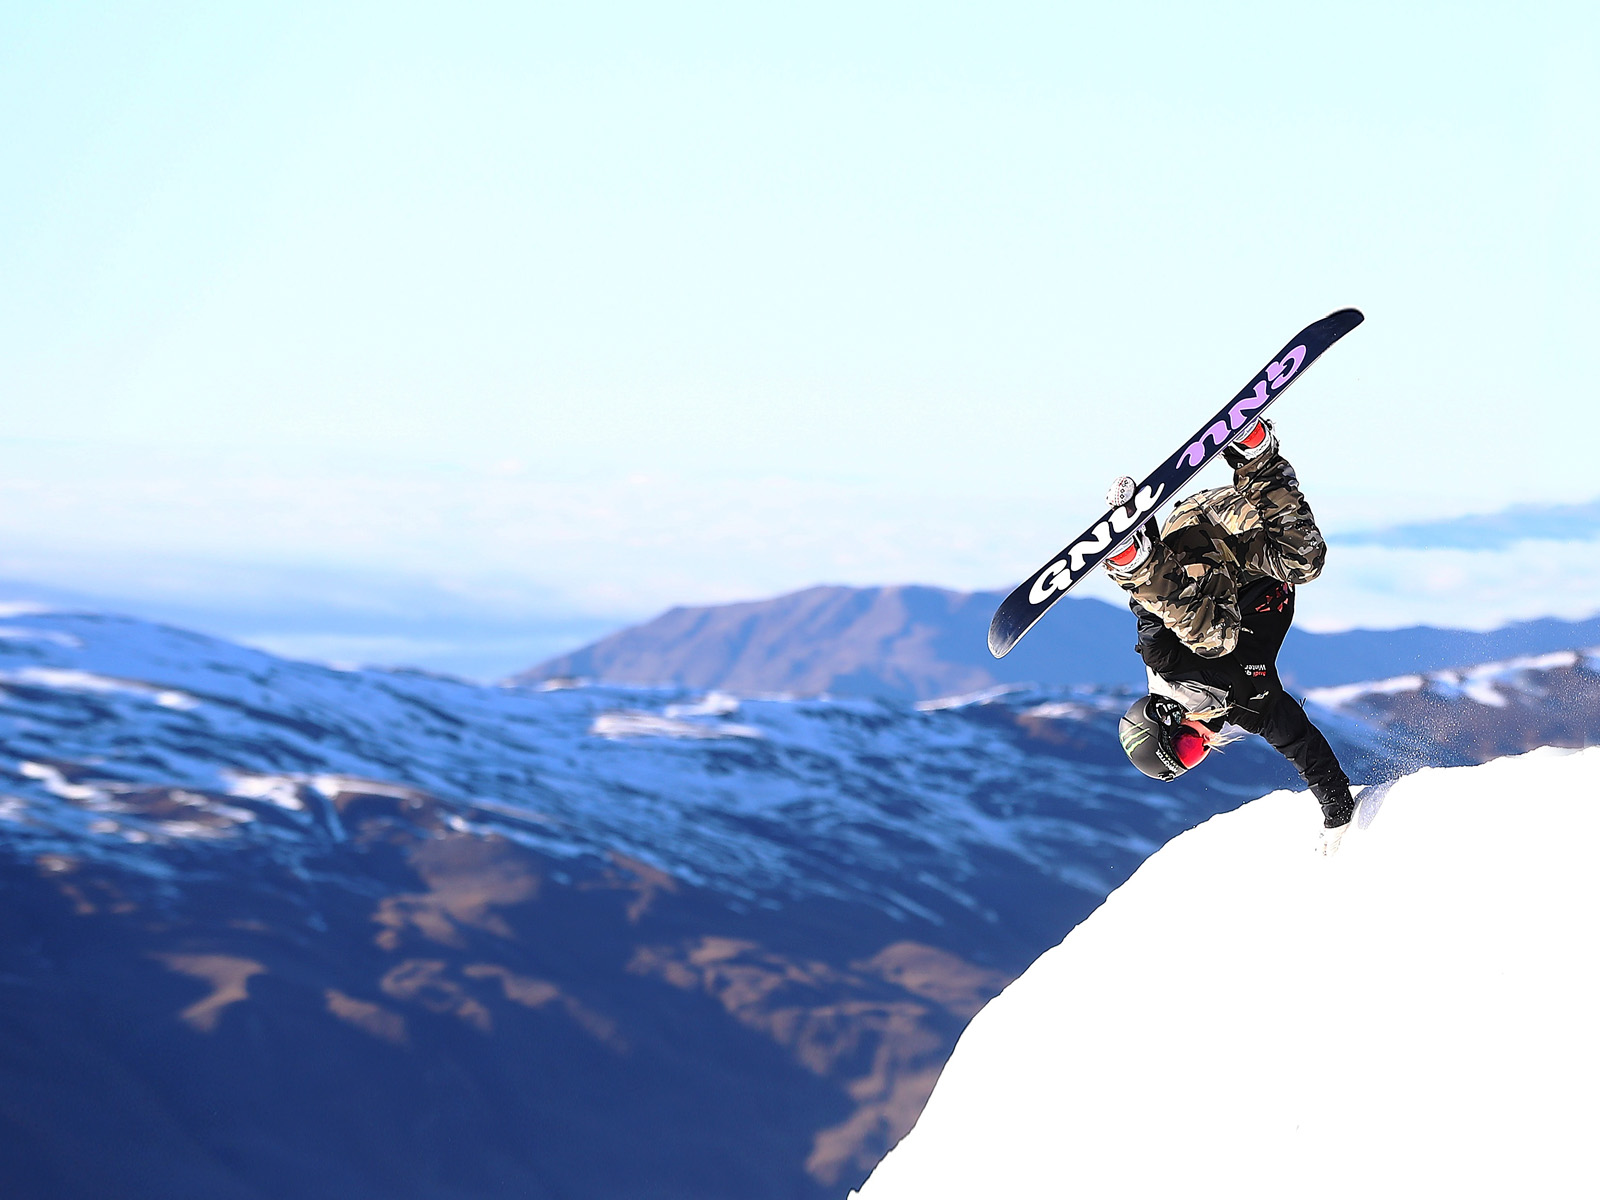 Us Grand Prix >> About Snowboarding